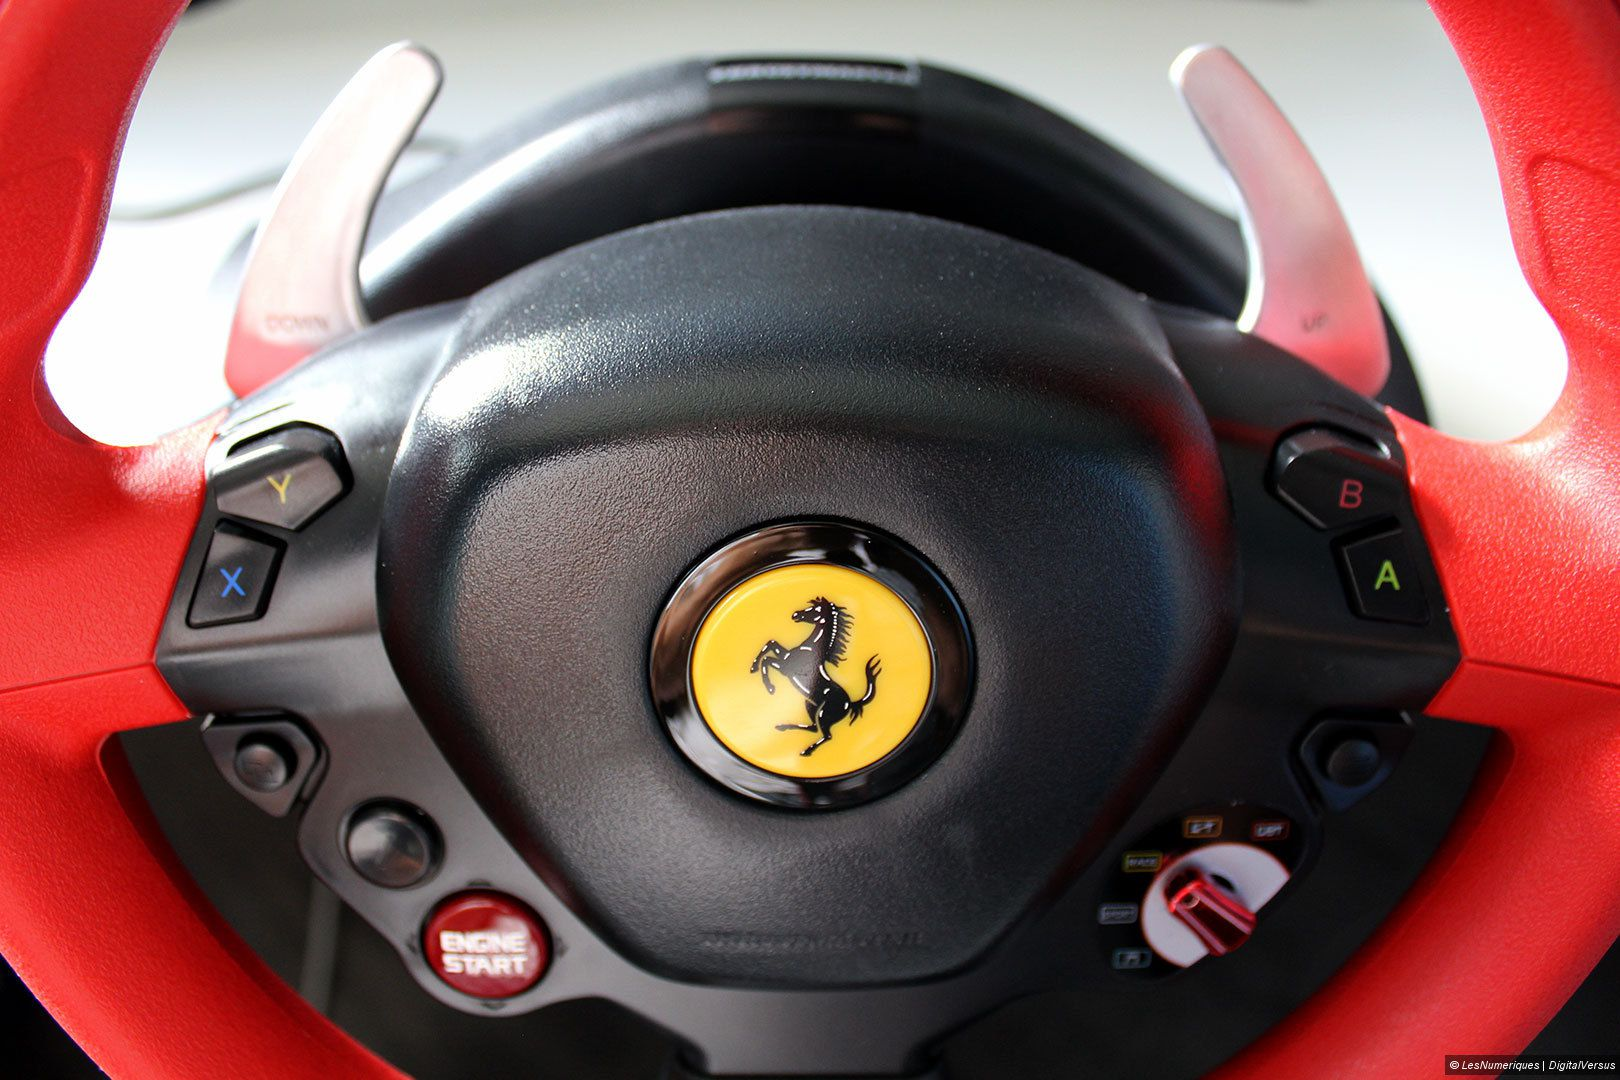 ca games dp edition thrustmaster video spider computer one xbox wheel amazon and ferrari racing